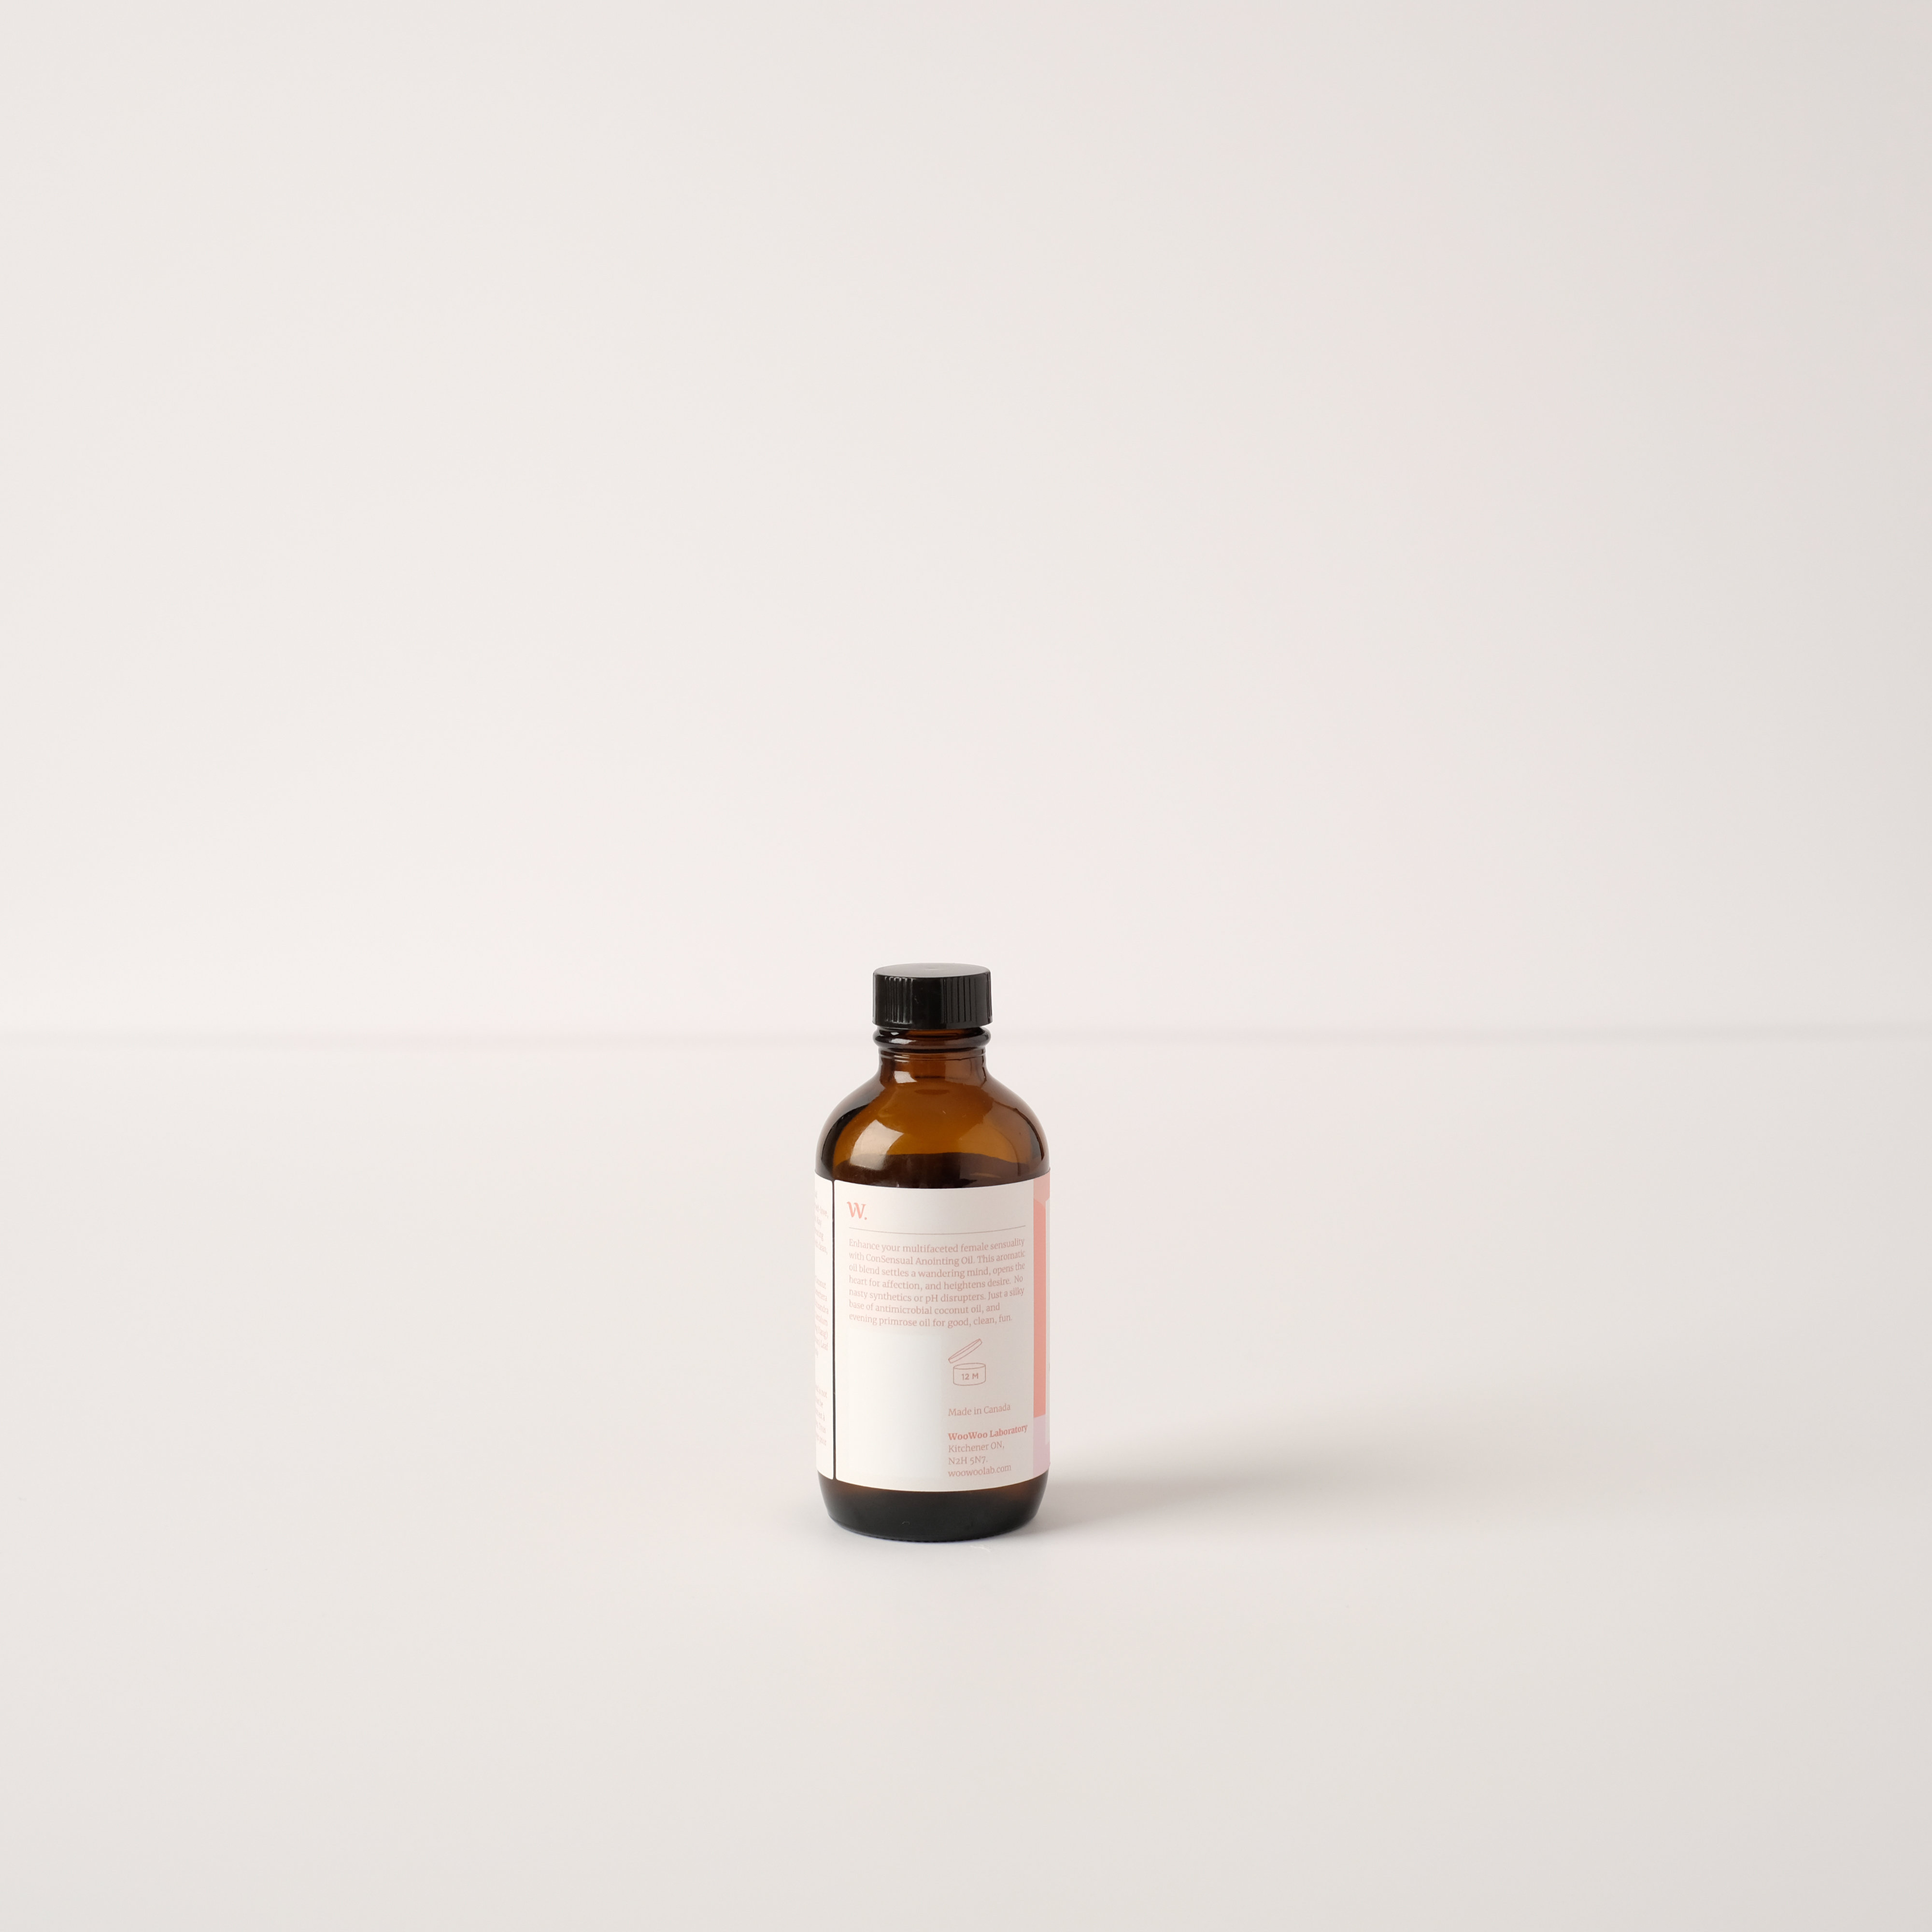 ConSensual Anointing Oil